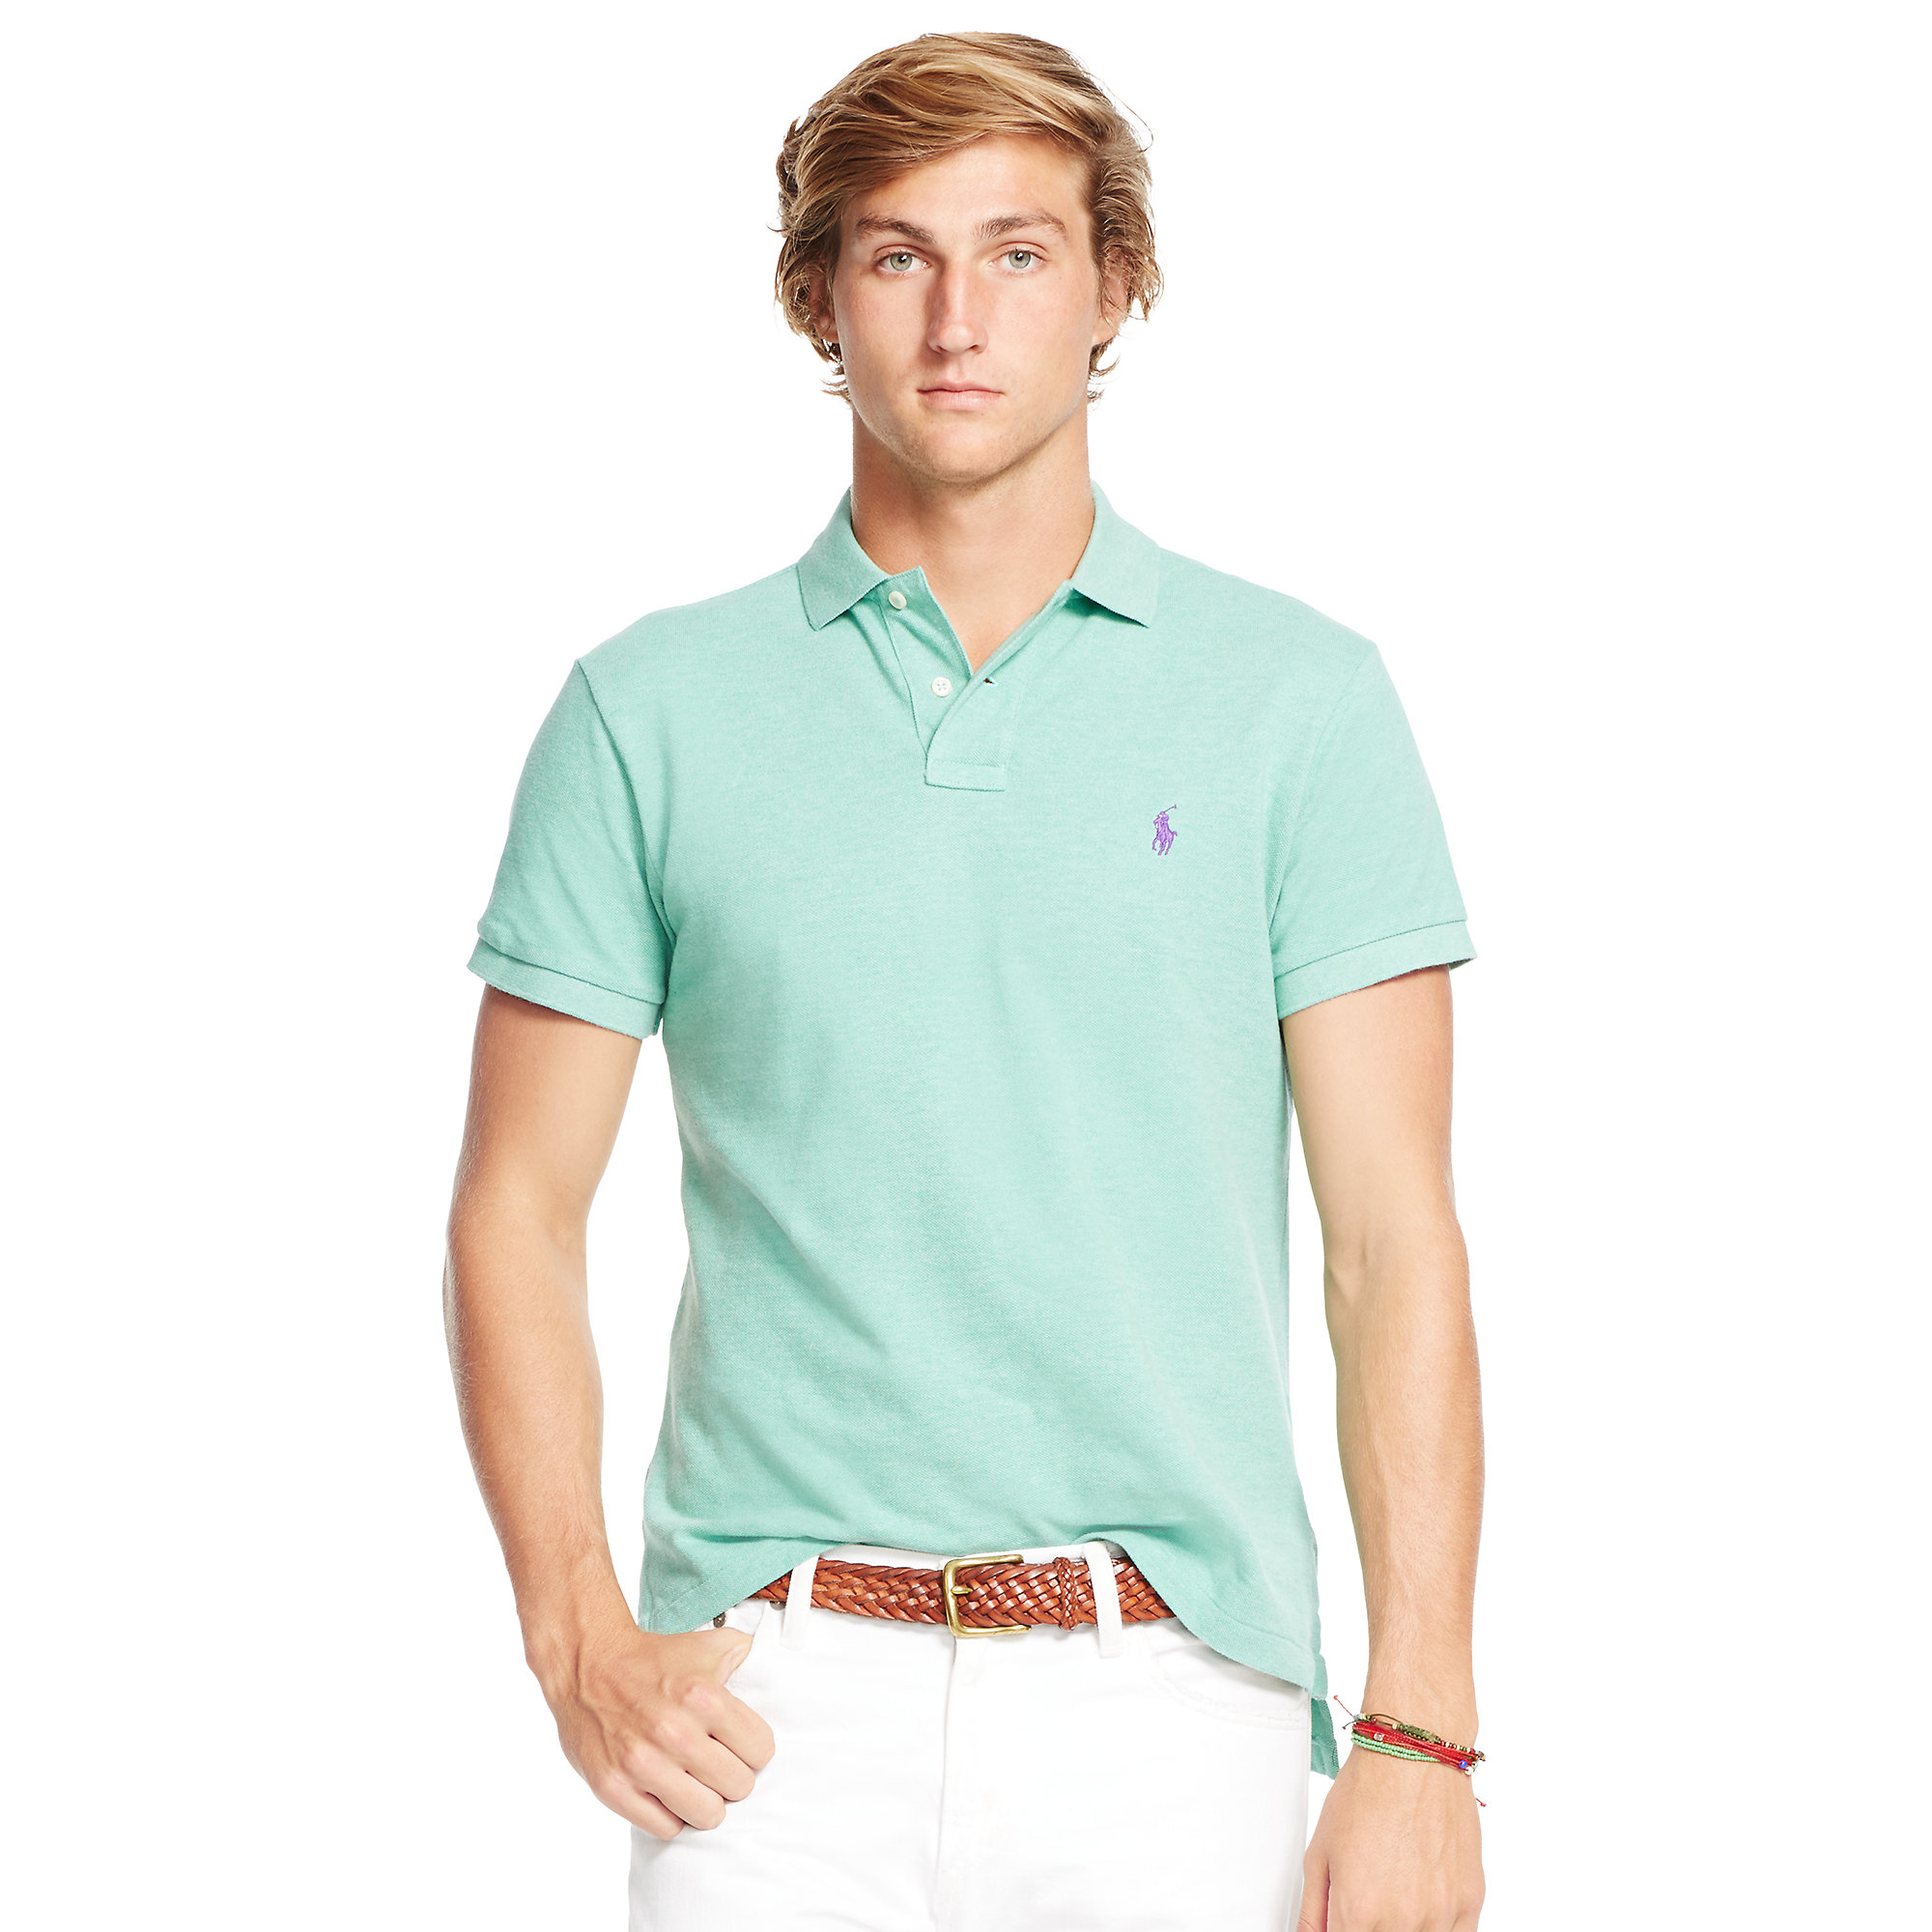 34311cb9f99ef Lyst - Polo Ralph Lauren Classic-fit Mesh Polo Shirt in Green for Men